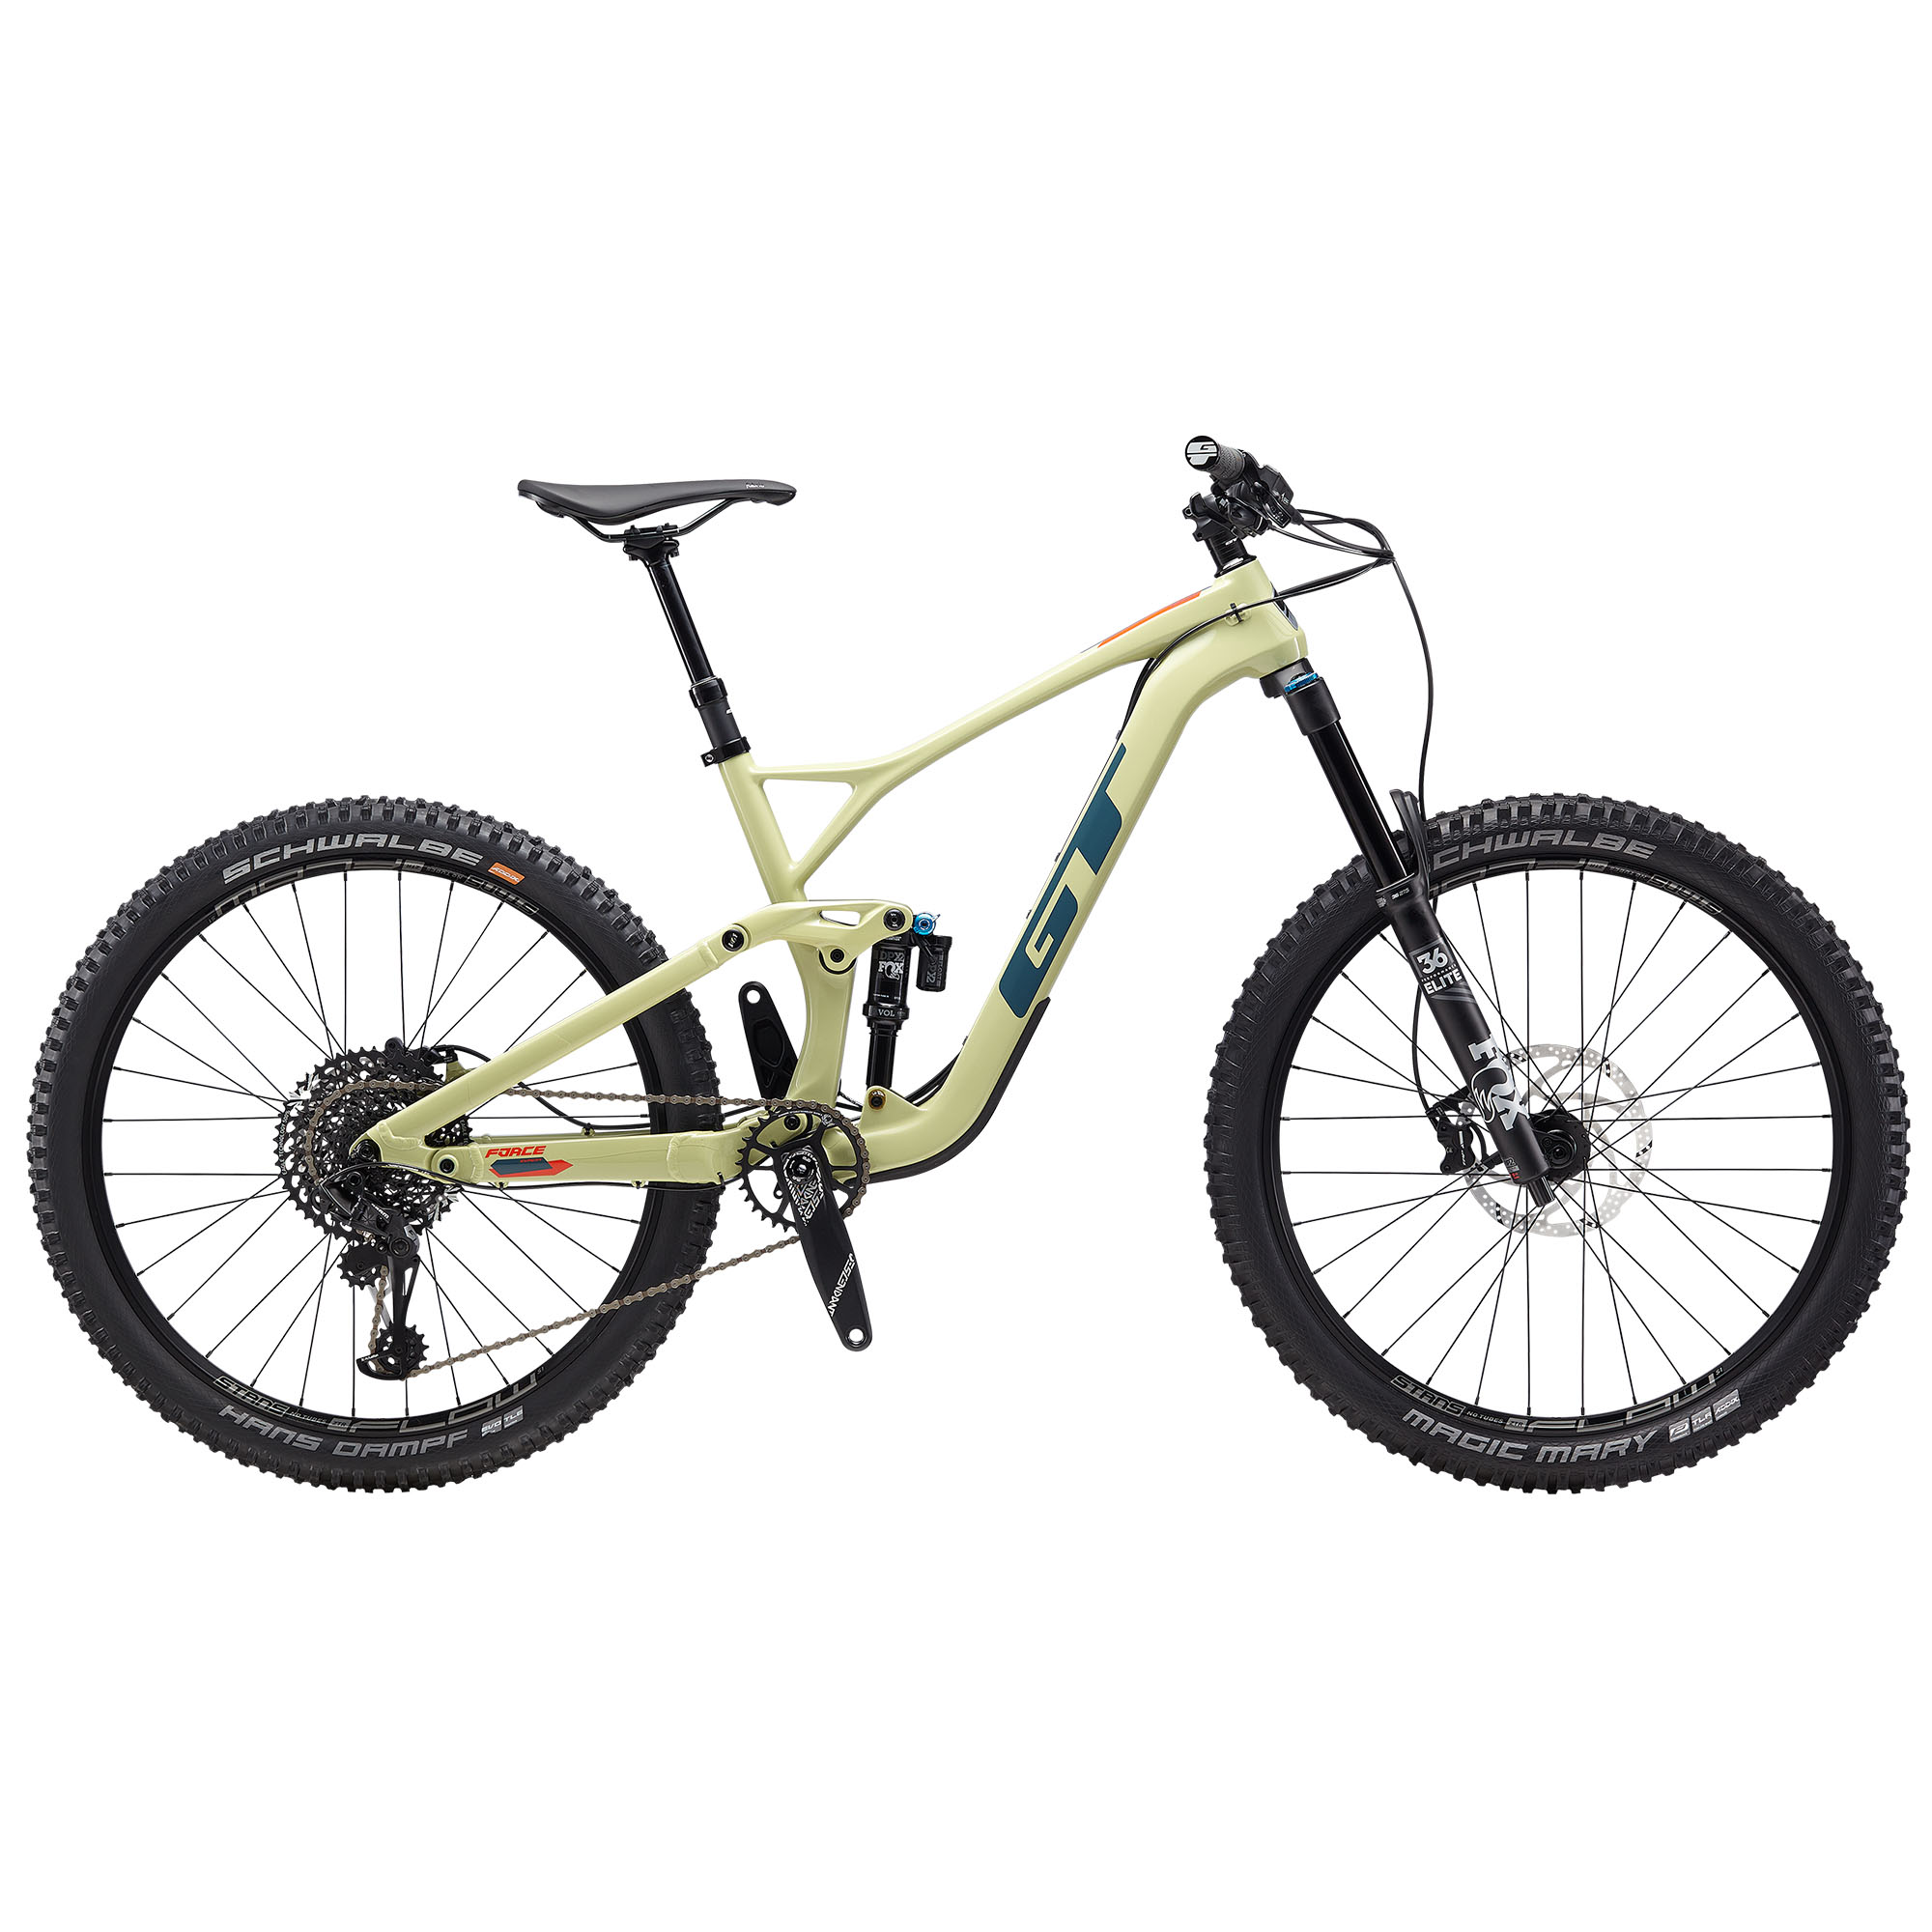 GT Bicycles Men's Force Carbon Expert 27.5 Mountain Bike '20 -  00038675179837